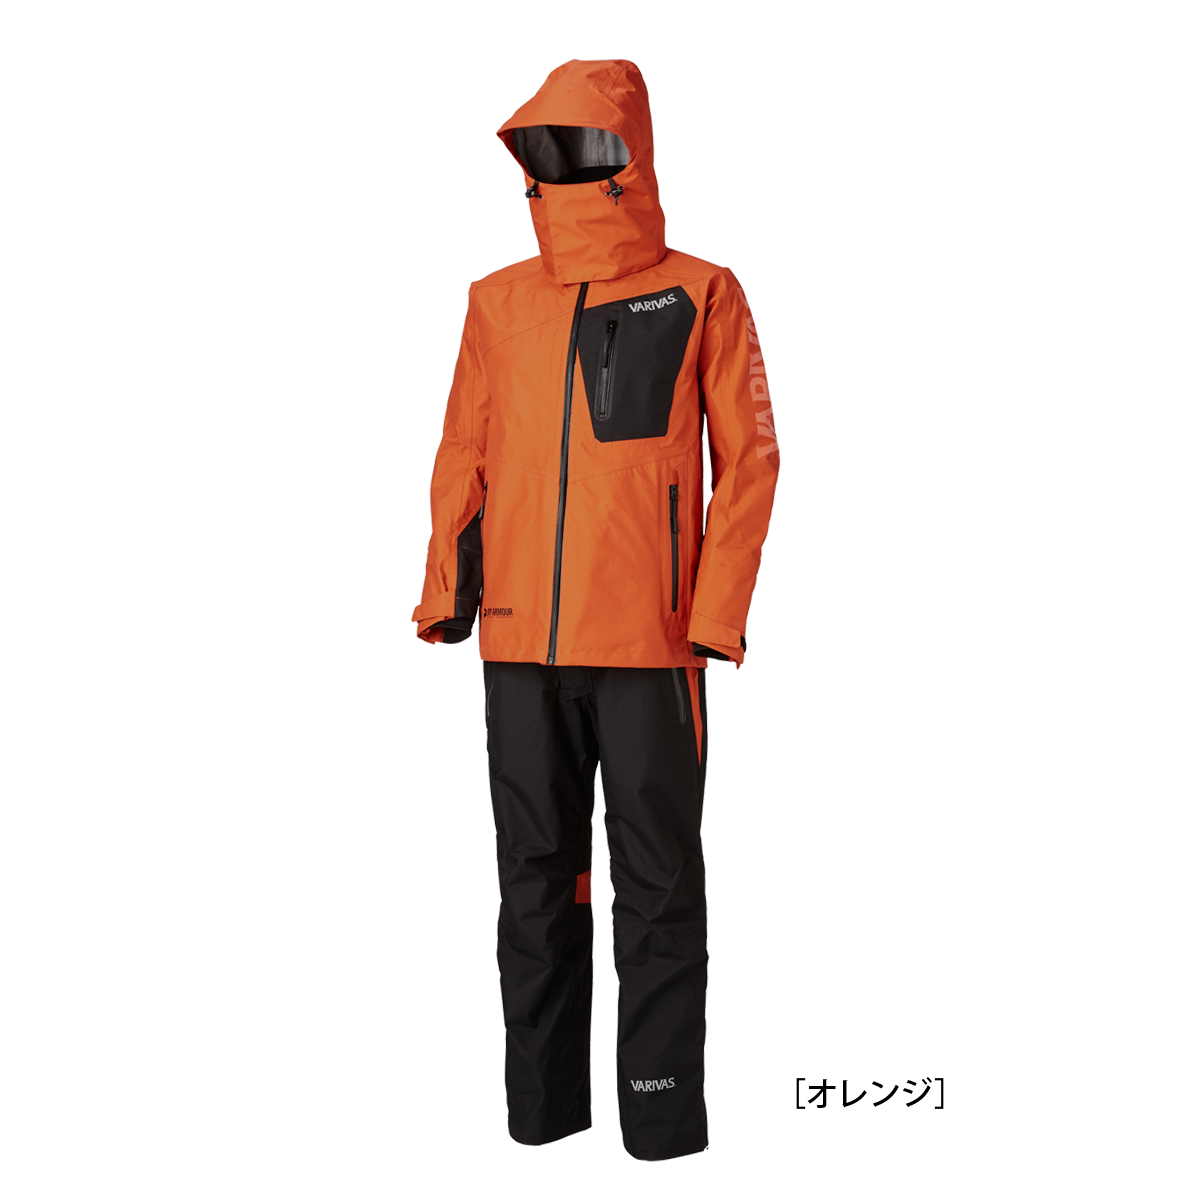 Dry Armor Active Rain Suits [VARS-12]